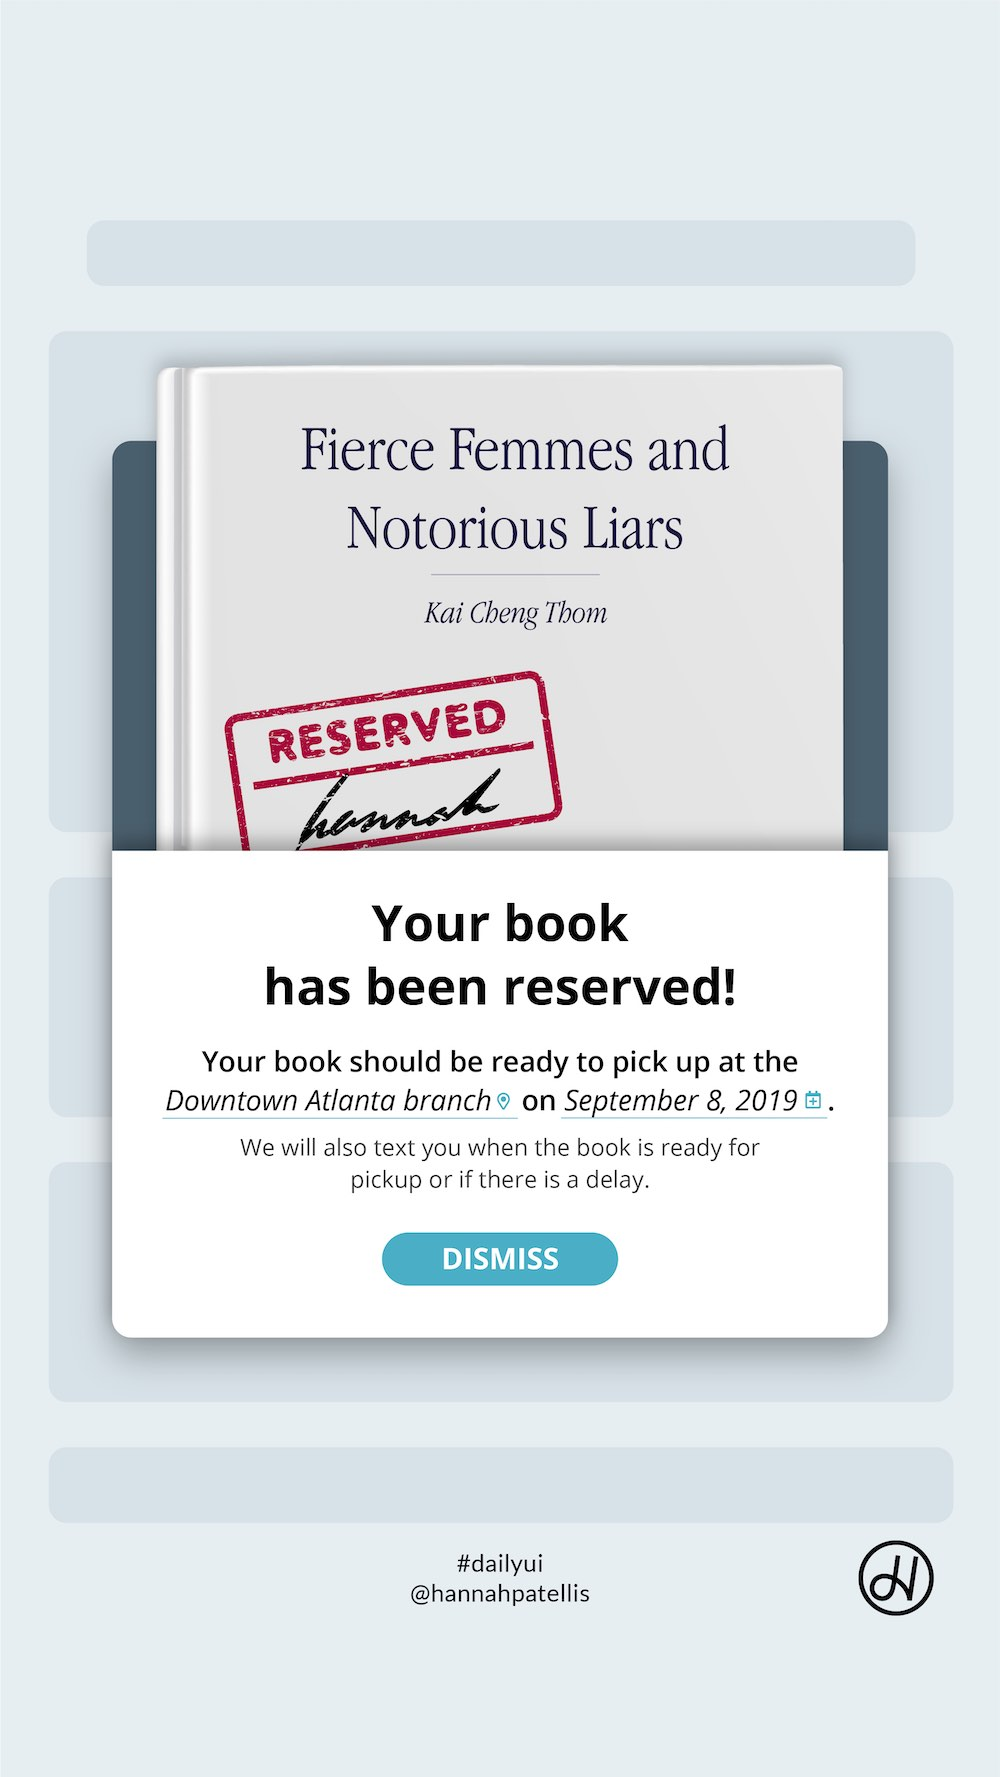 Flash message user interface design displaying a confirmation for a book reservation at a library